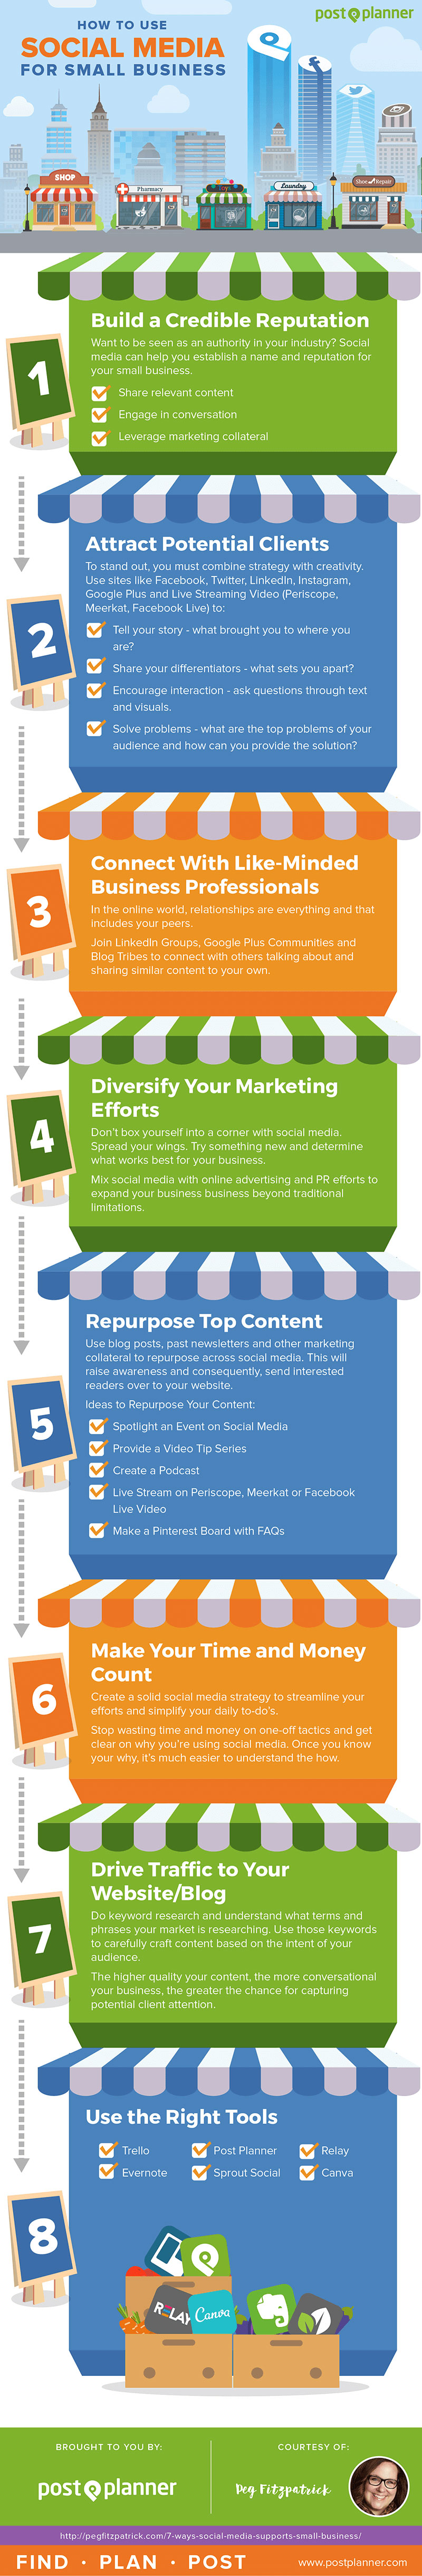 How-to-Use-Social-Media-for-Your-Small-Business-Infographic